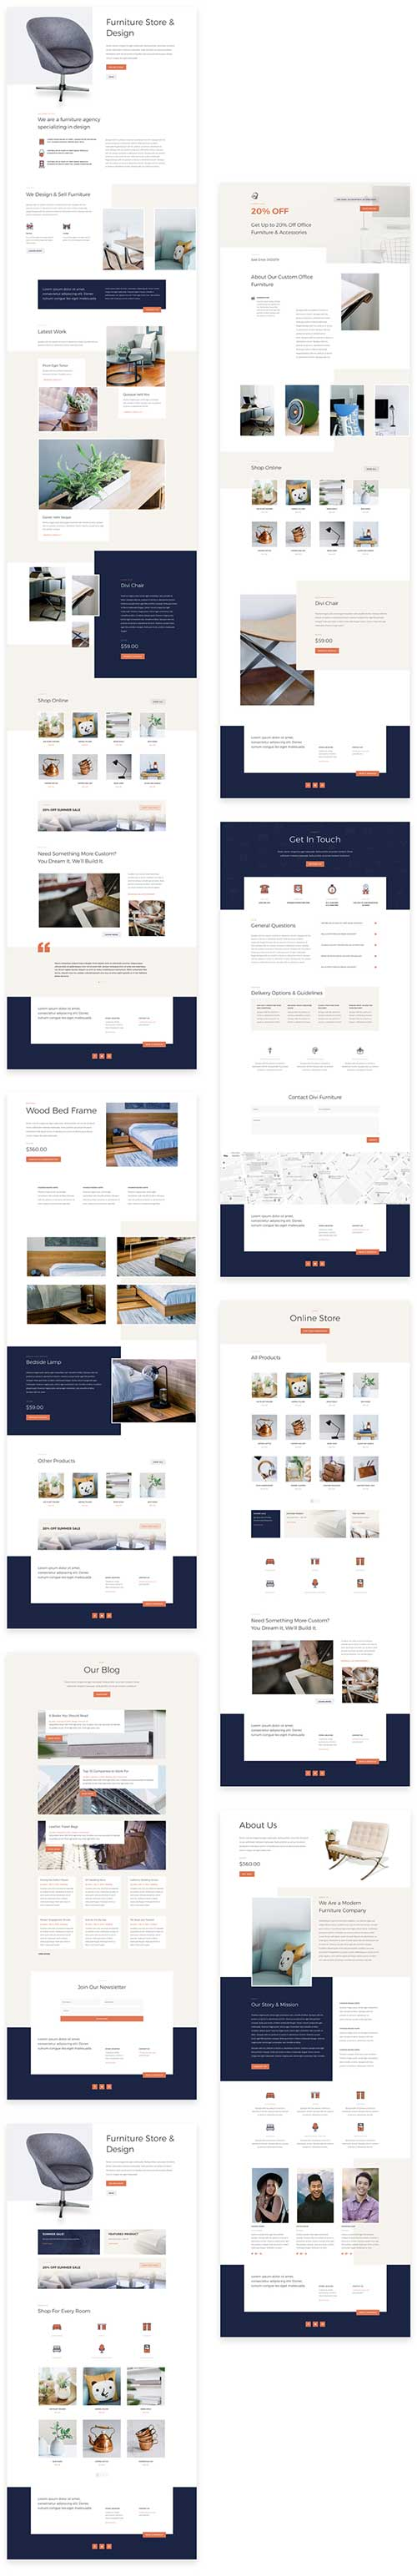 divi layouts furniture store